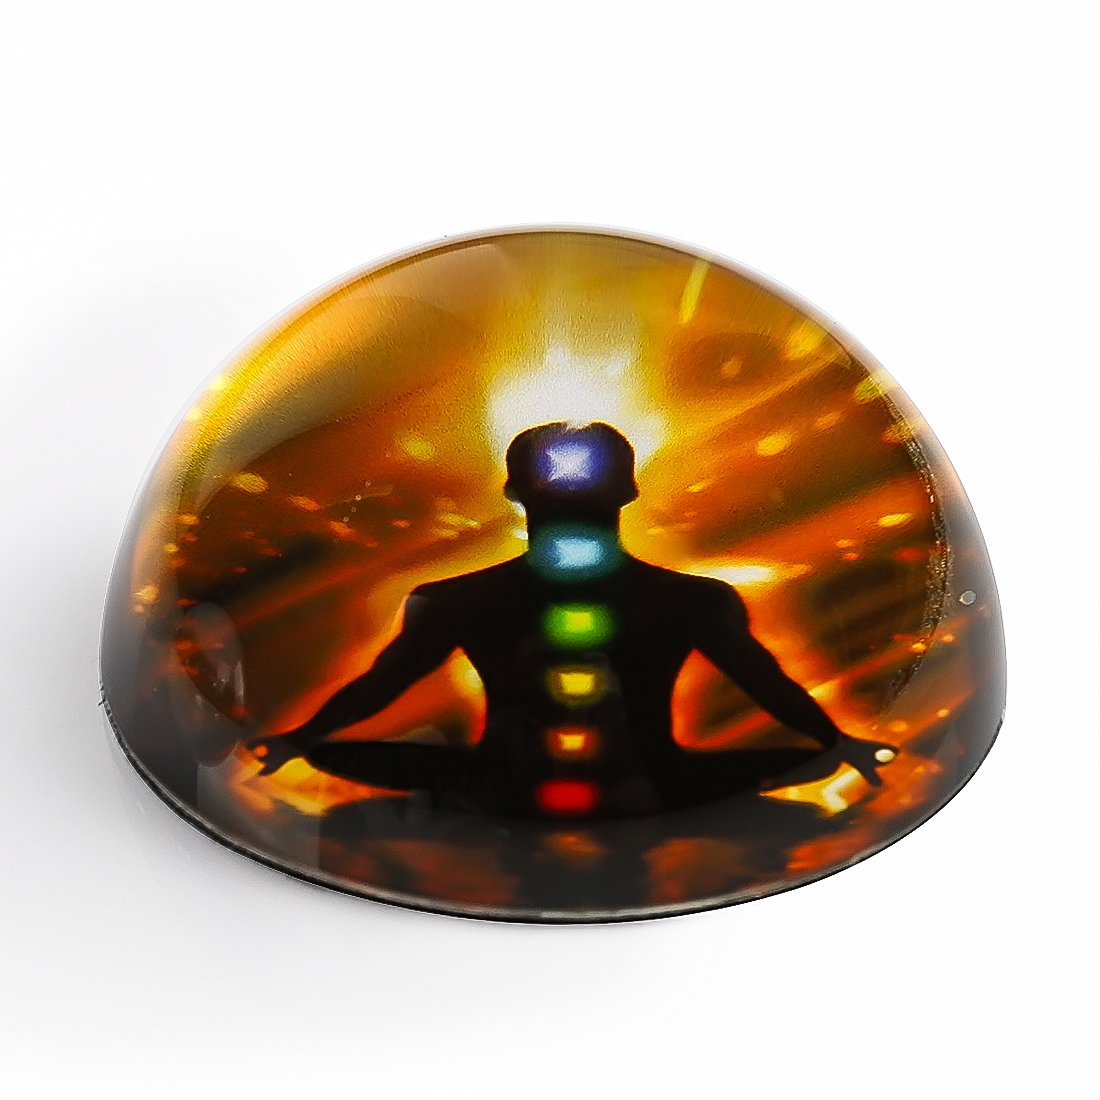 H&D 3D Glass Fengshui Nature Dome Paperweight 3inch Diameter (Men Chakra)